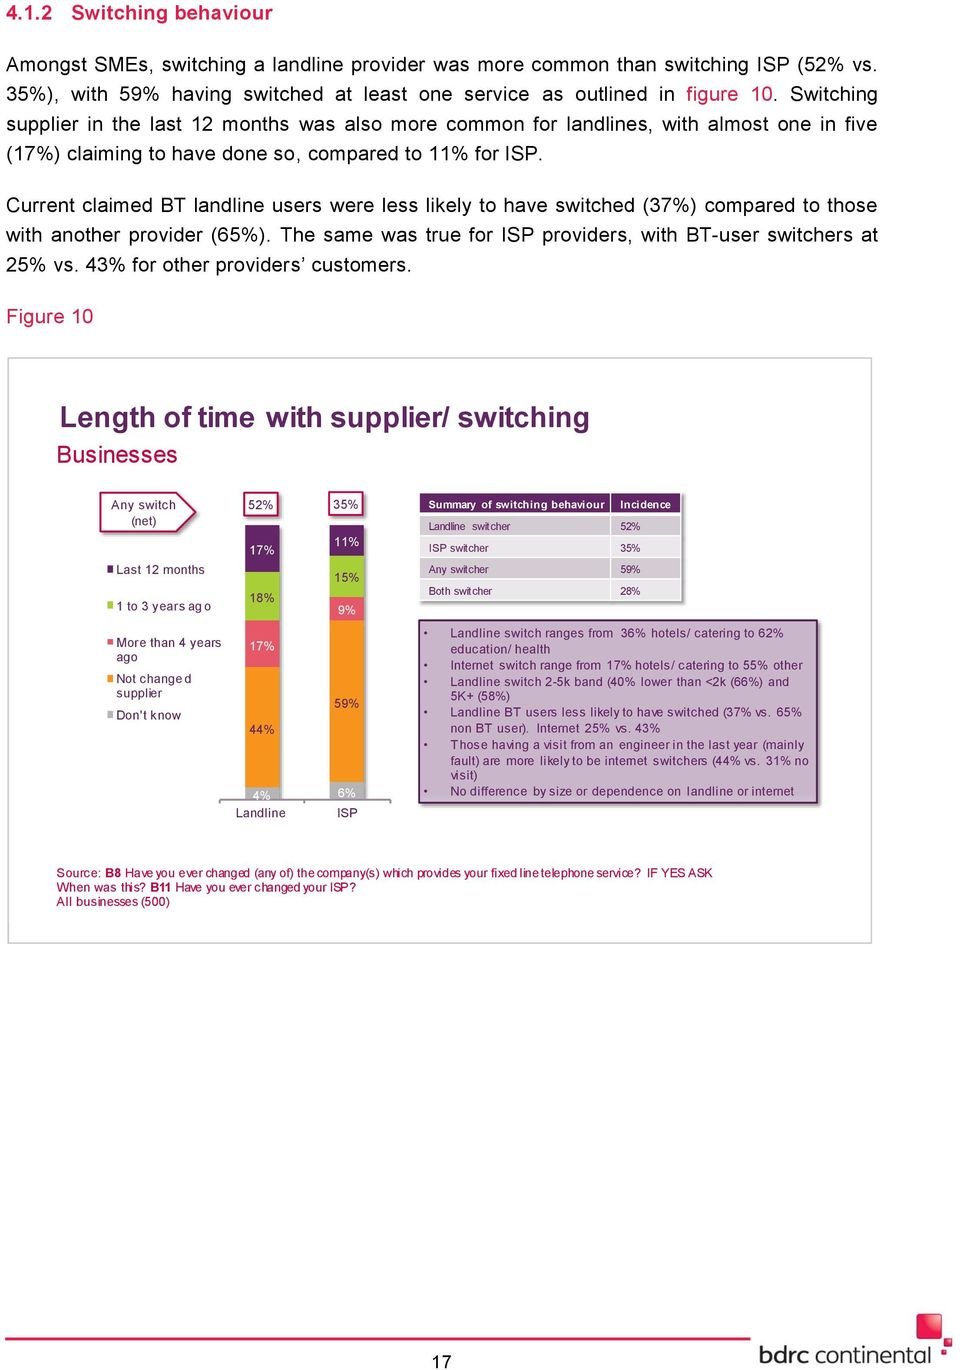 Current claimed BT landline users were less likely to have switched (37%) compared to those with another provider (65%). The same was true for ISP providers, with BT-user switchers at 25% vs.